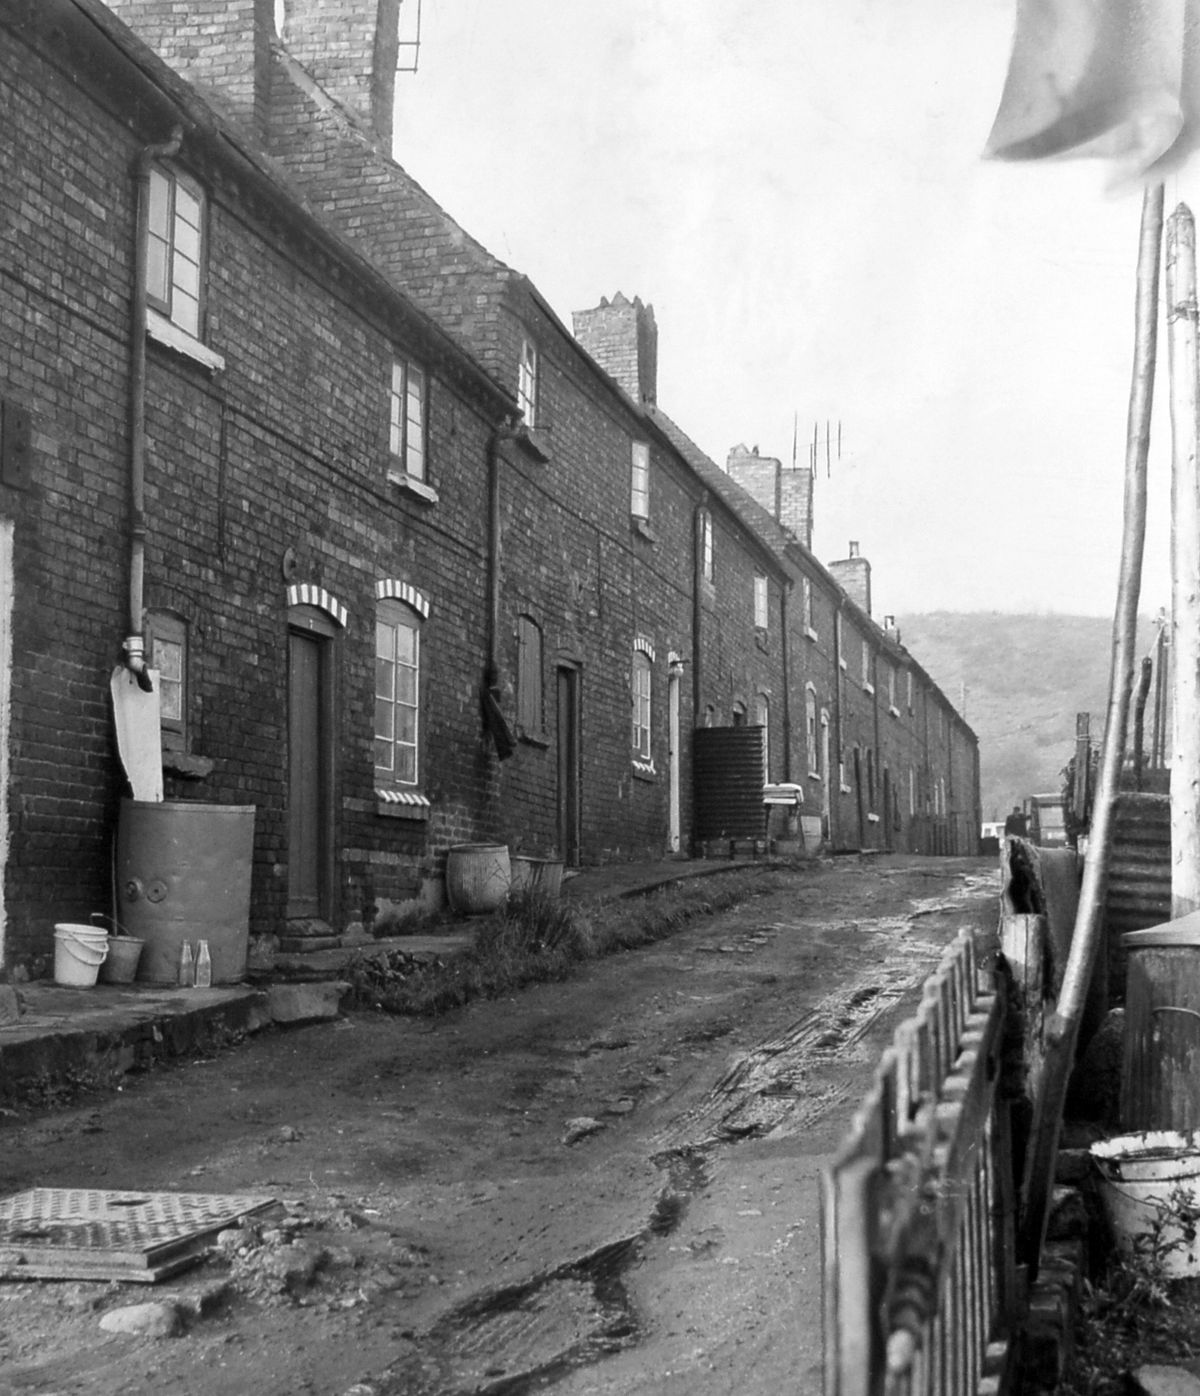 Lost Telford – Single Row at Hinkshay, Dawley, in November 1963, where residents had to draw water from a communal tap.